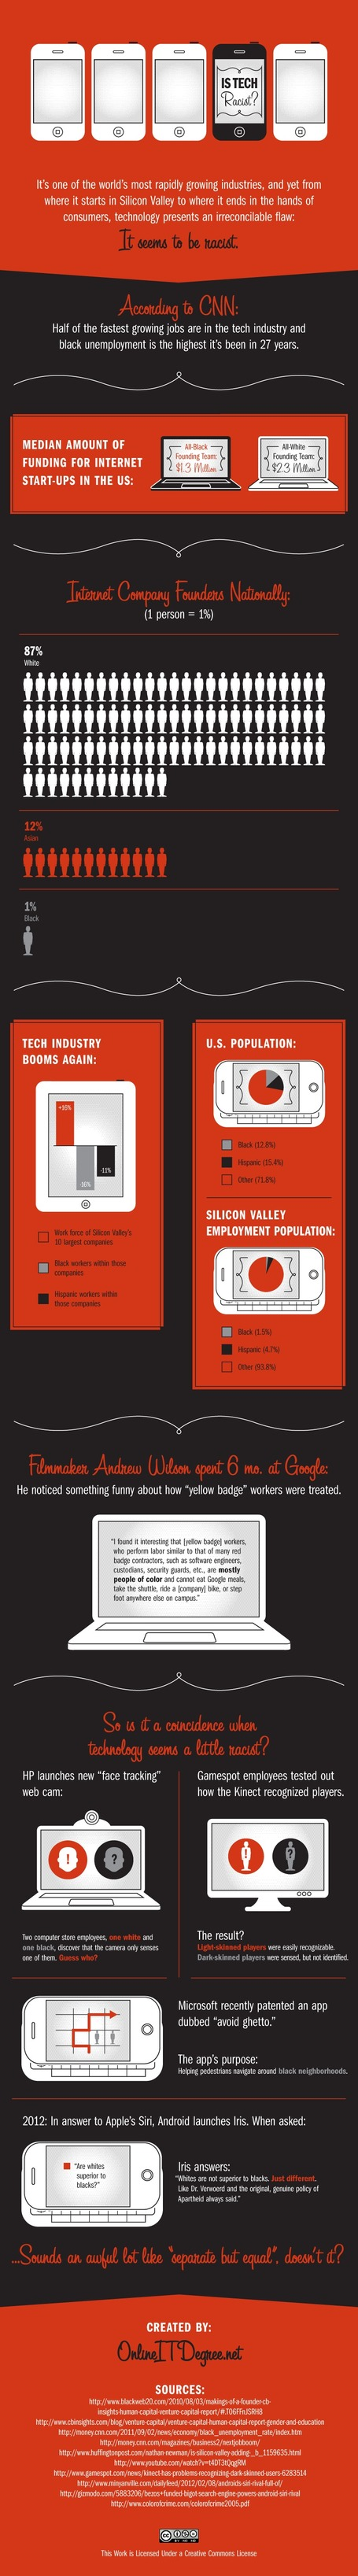 INFOGRAPHIC: Is Tech Racist? | MarketingHits | Scoop.it